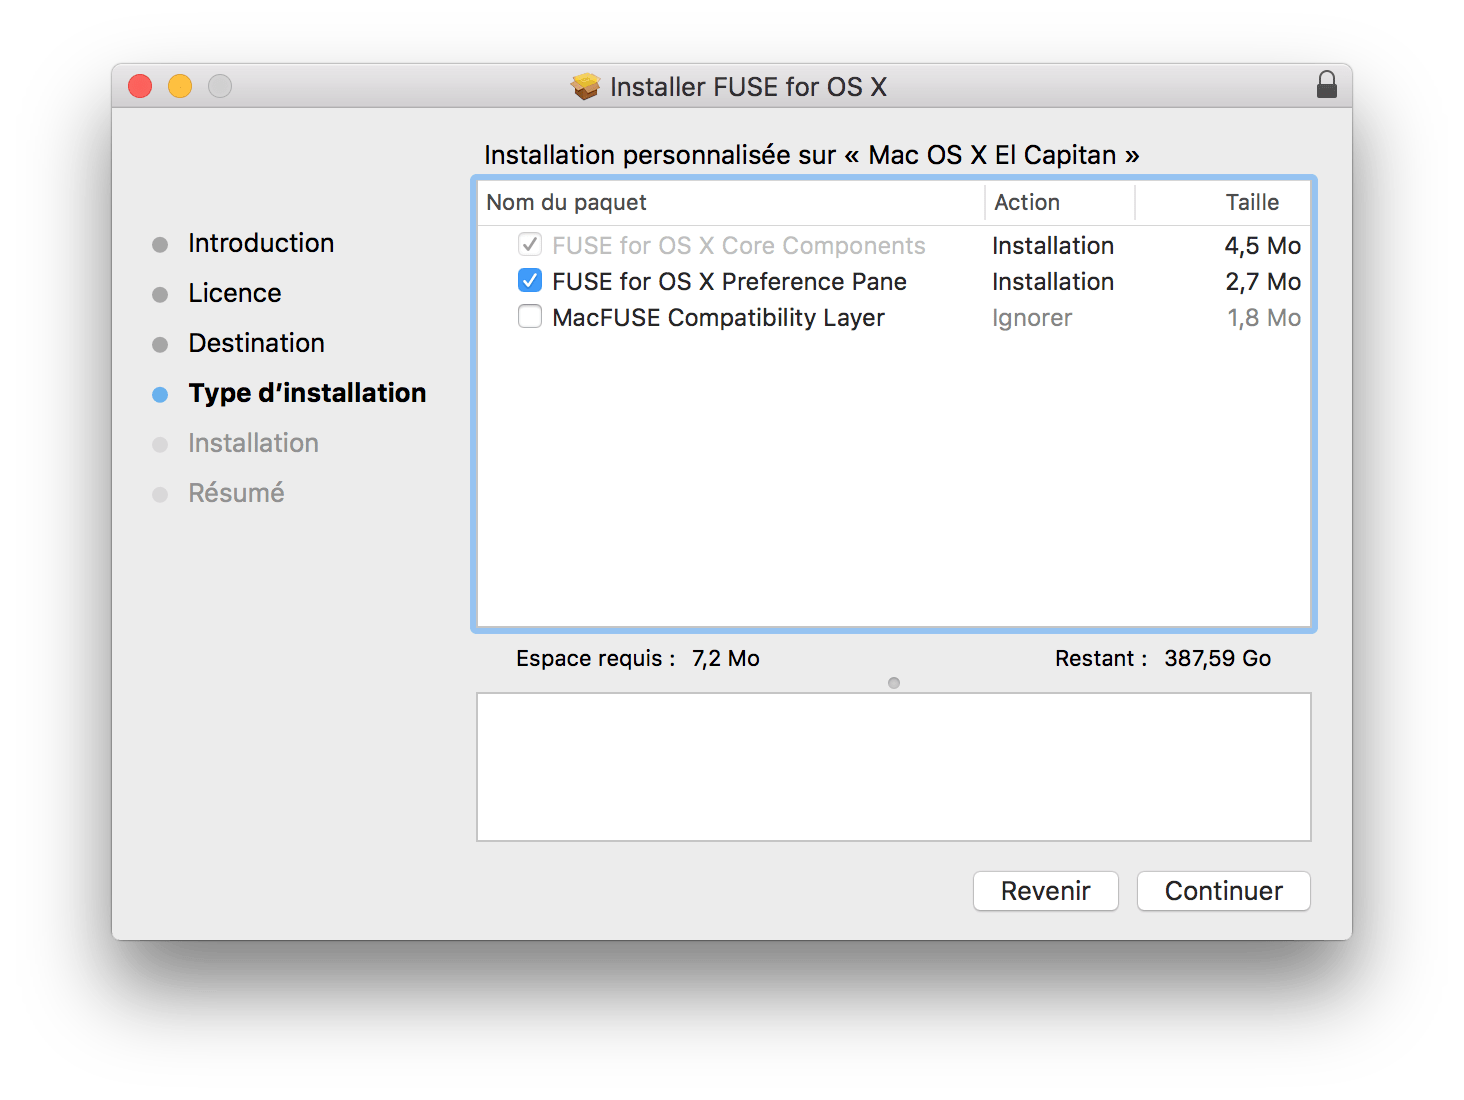 Paragon ntfs for mac 14 serial number | Download Paragon NTFS for